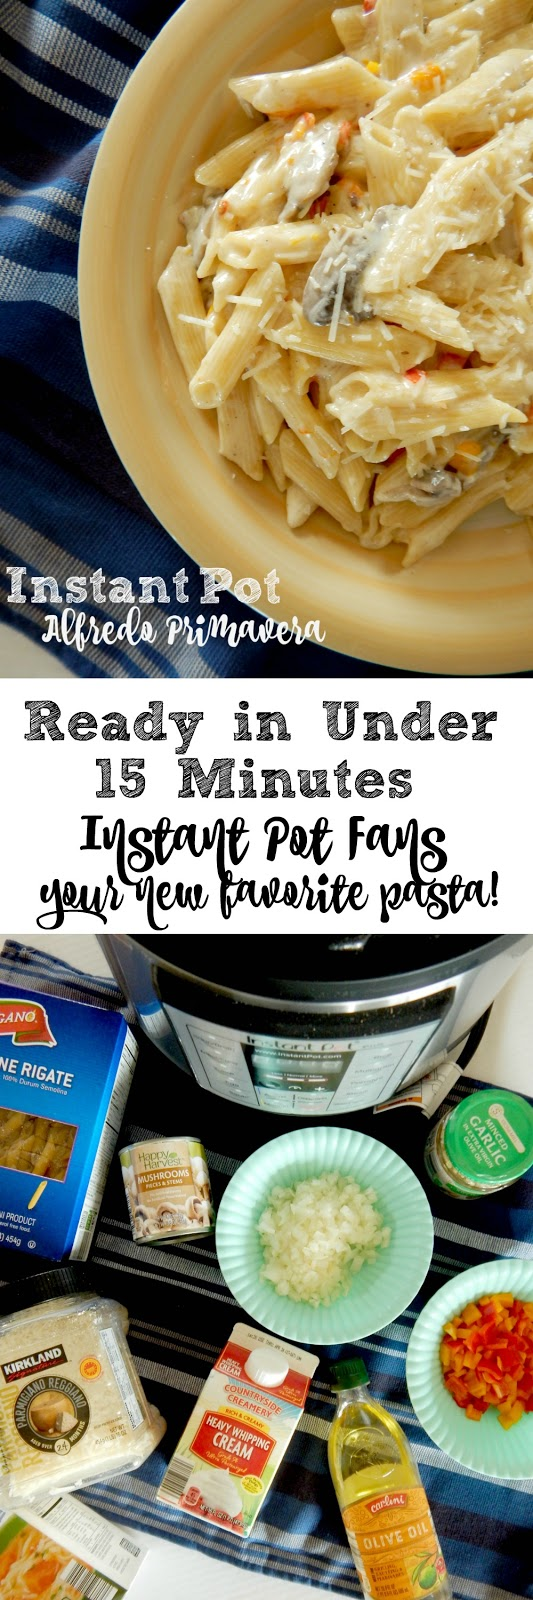 Instant Pot Alfredo Primavera...an easy, quick, delicious weeknight Instant Pot meal for your family!  A creamy white sauce over penne pasta with sauteed peppers, onions and mushrooms.  Topped with Parmesan cheese! (sweetandsavoryfood.com)